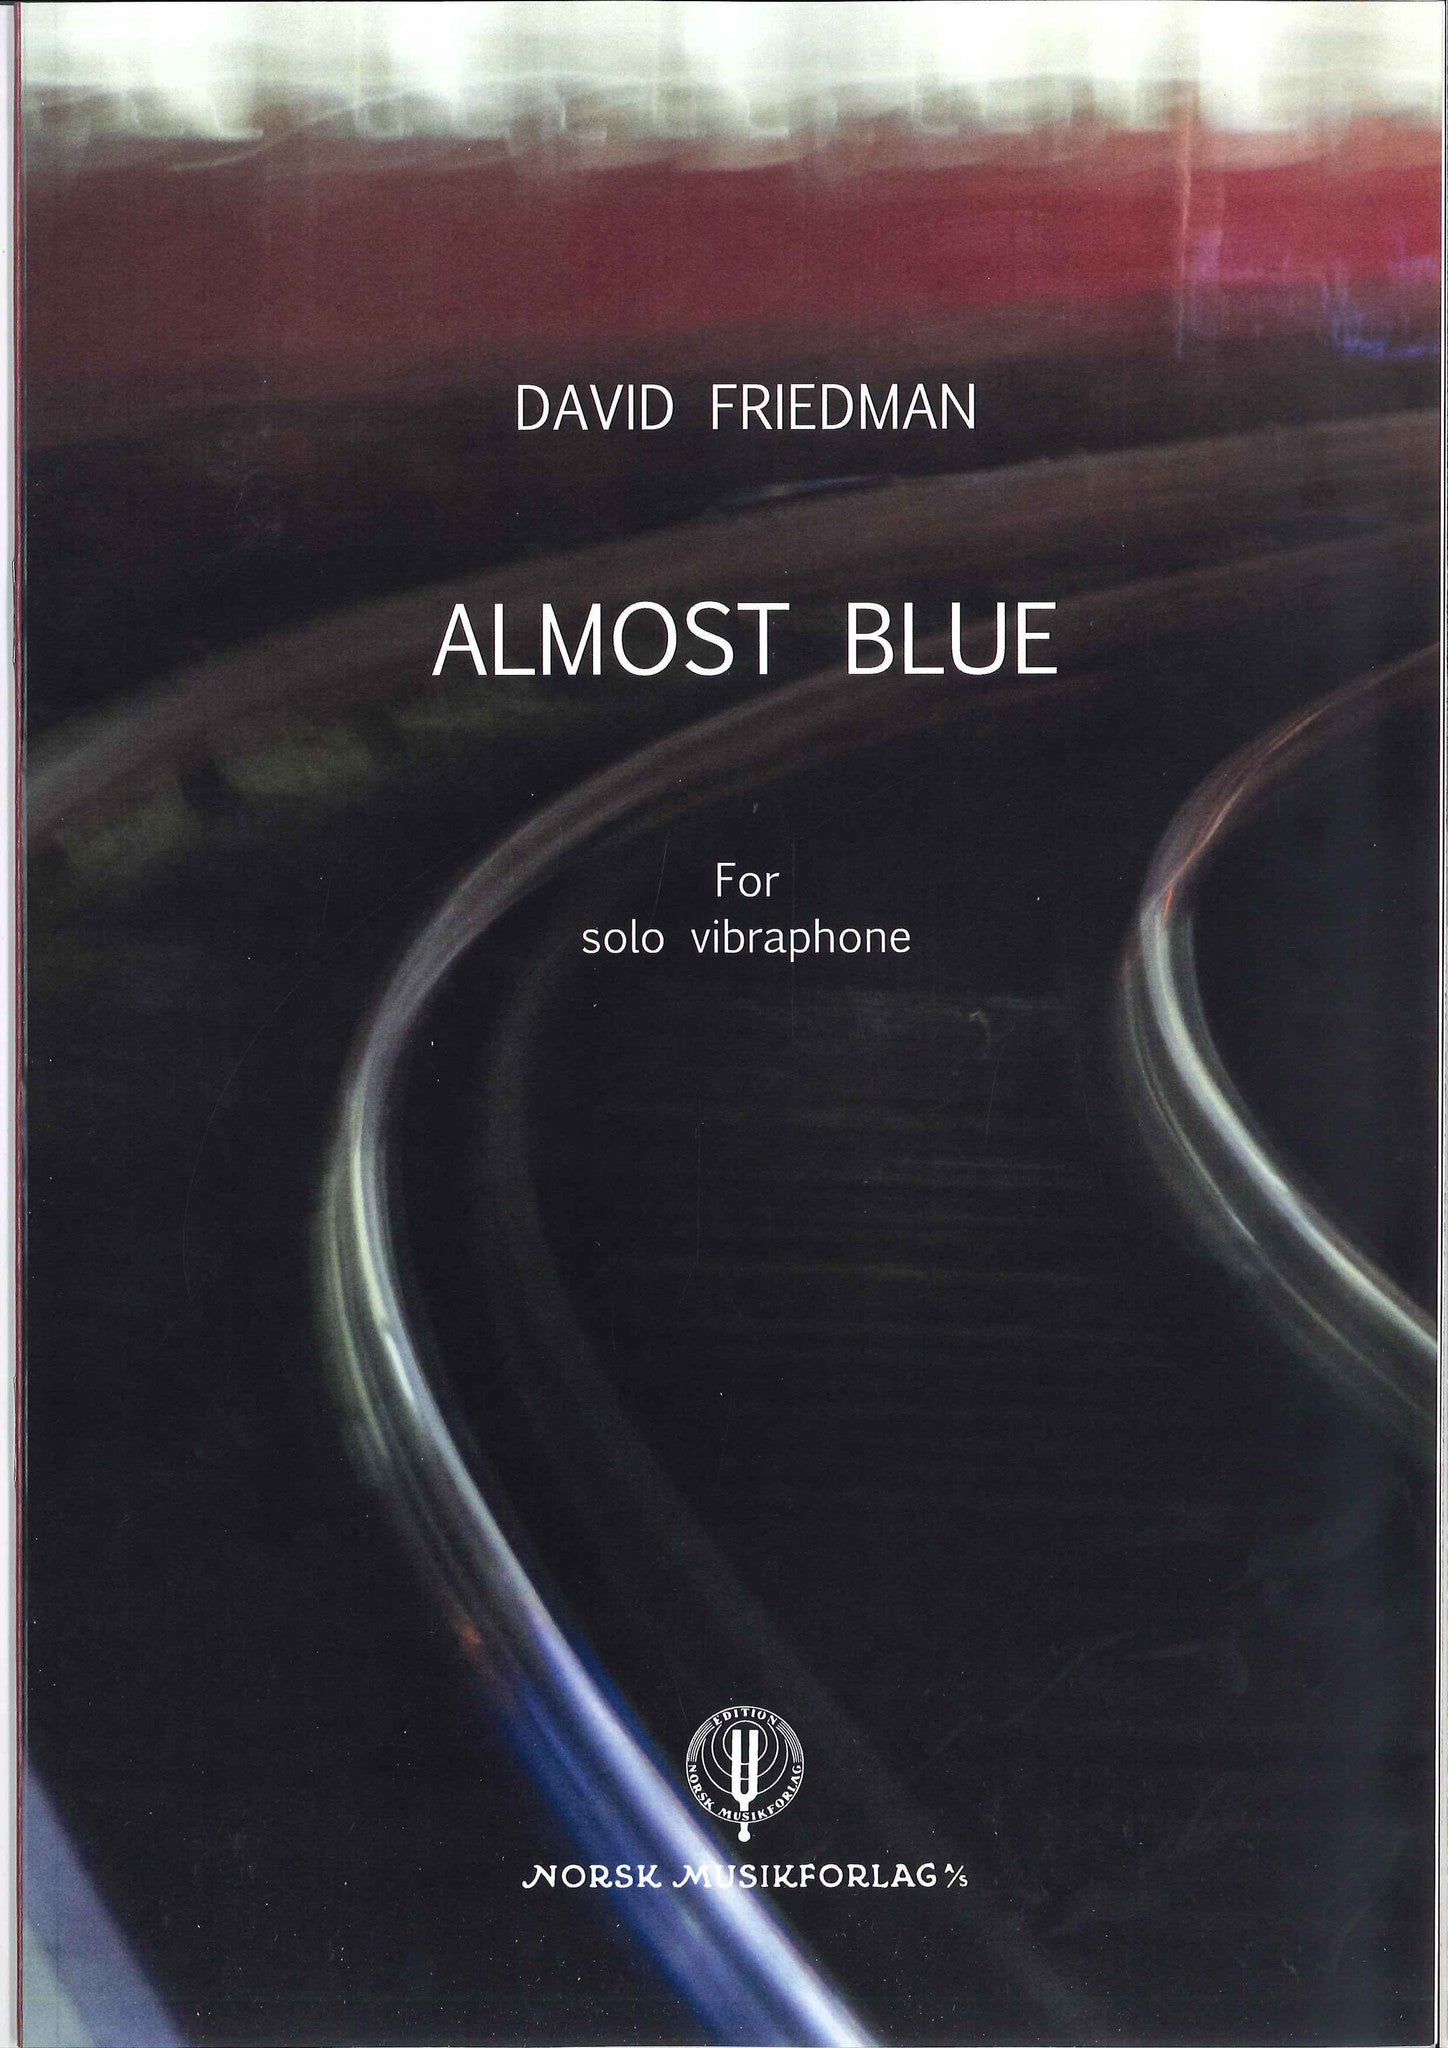 David Friedman - Almost Blue